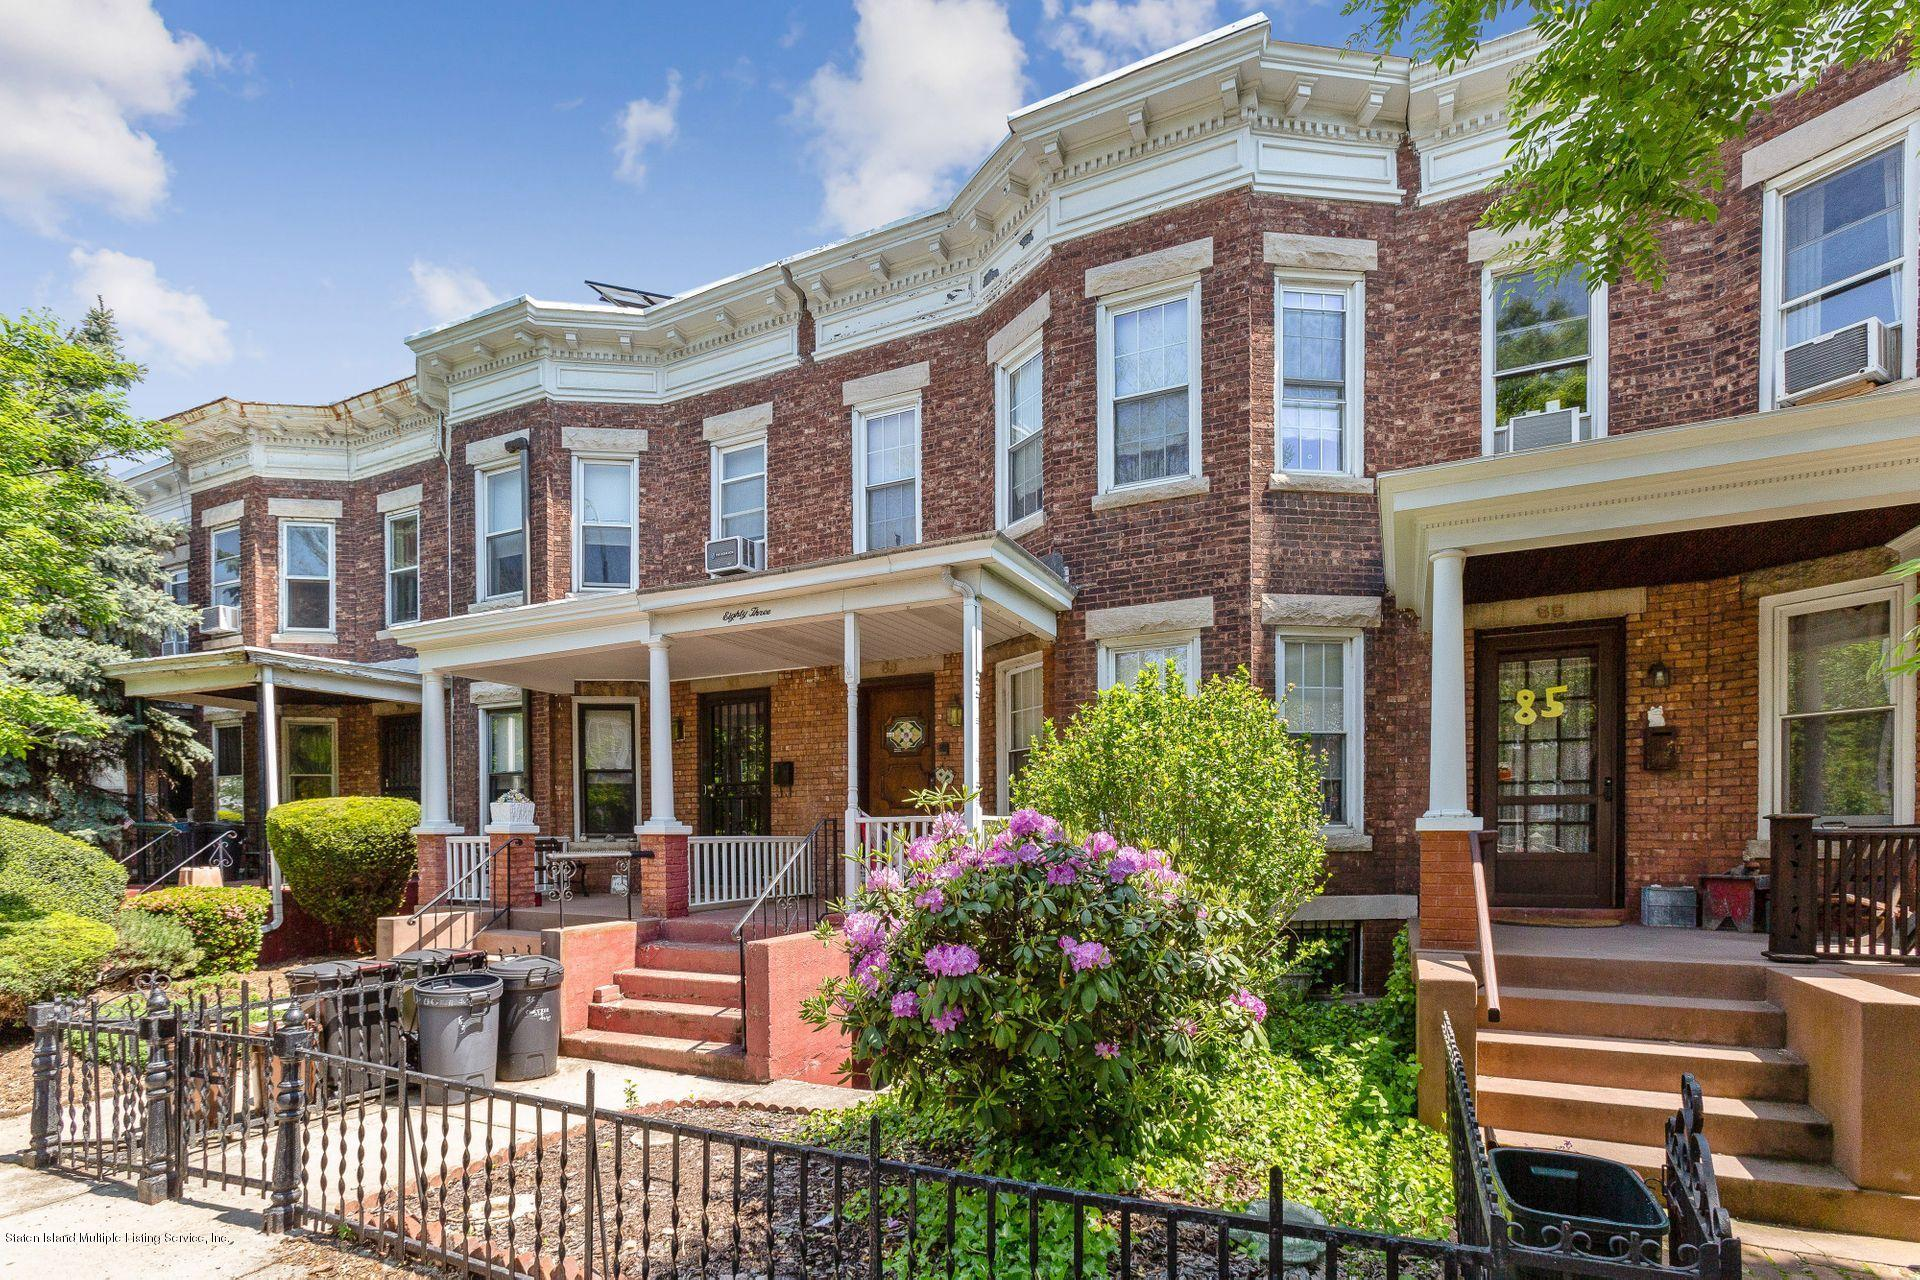 Single Family - Attached 83 Chester Avenue  Brooklyn, NY 11218, MLS-1131841-17